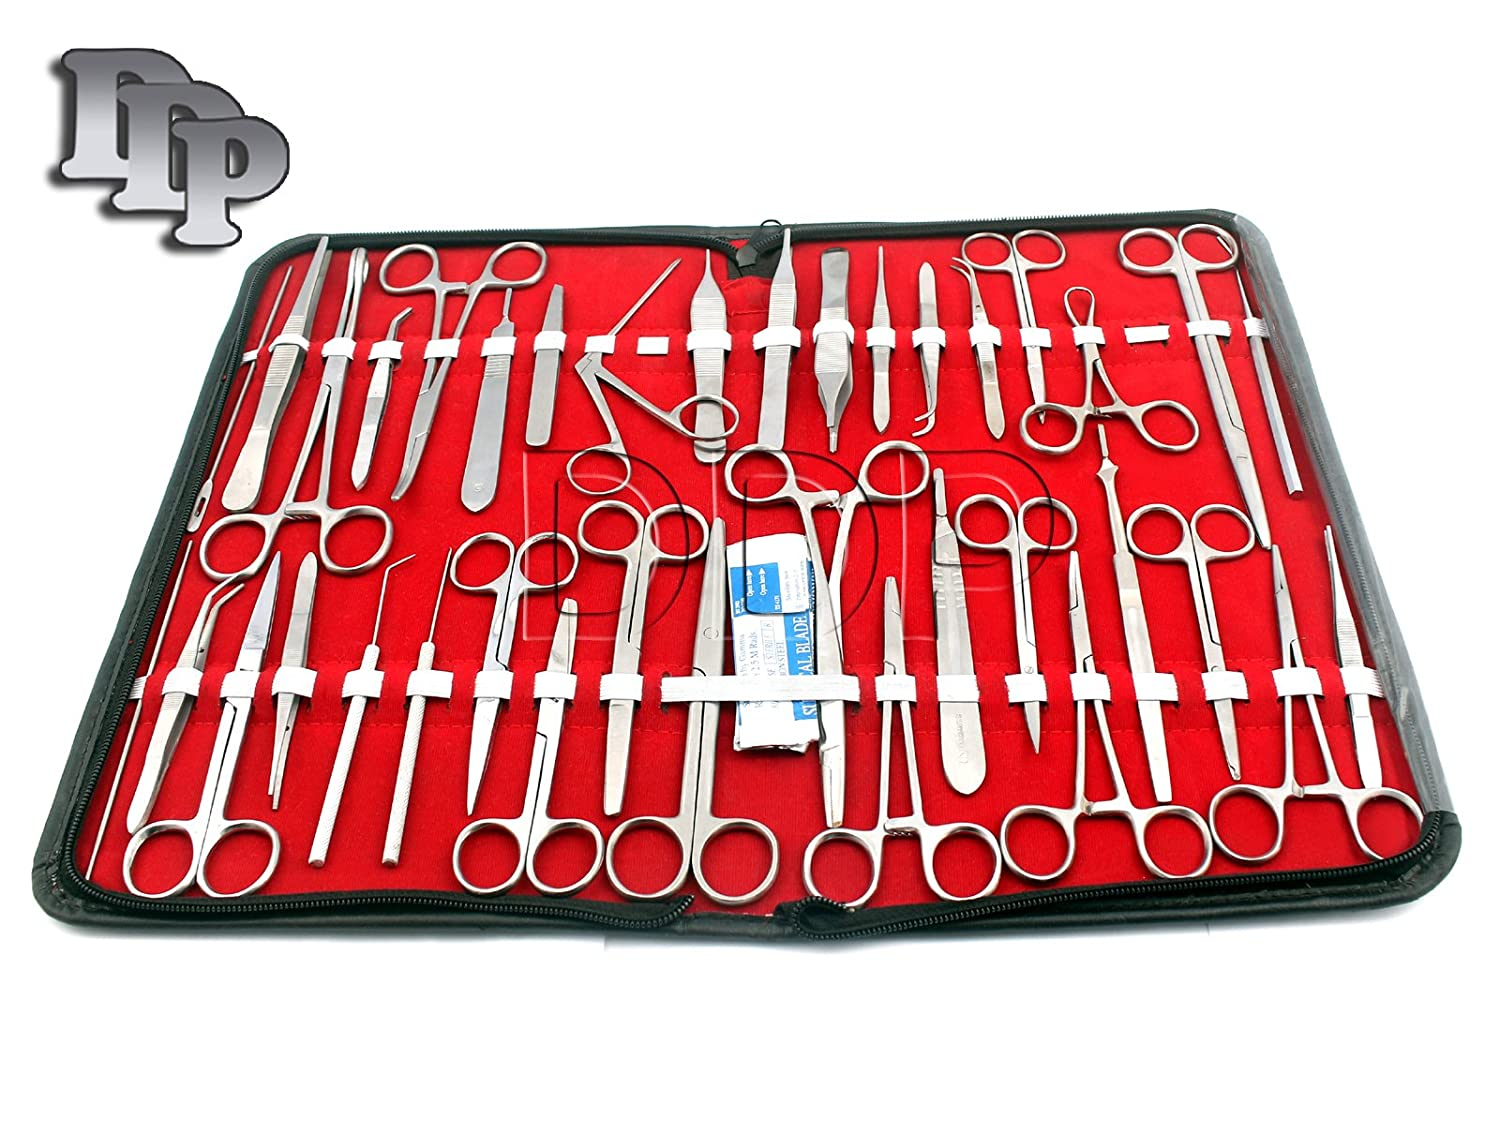 DDP 157 Pieces Instruments Kit Veterinary ! Scissors ! Forceps ! Needle Holder ! Scalpel Handel ! Stainless Steel (All in One)